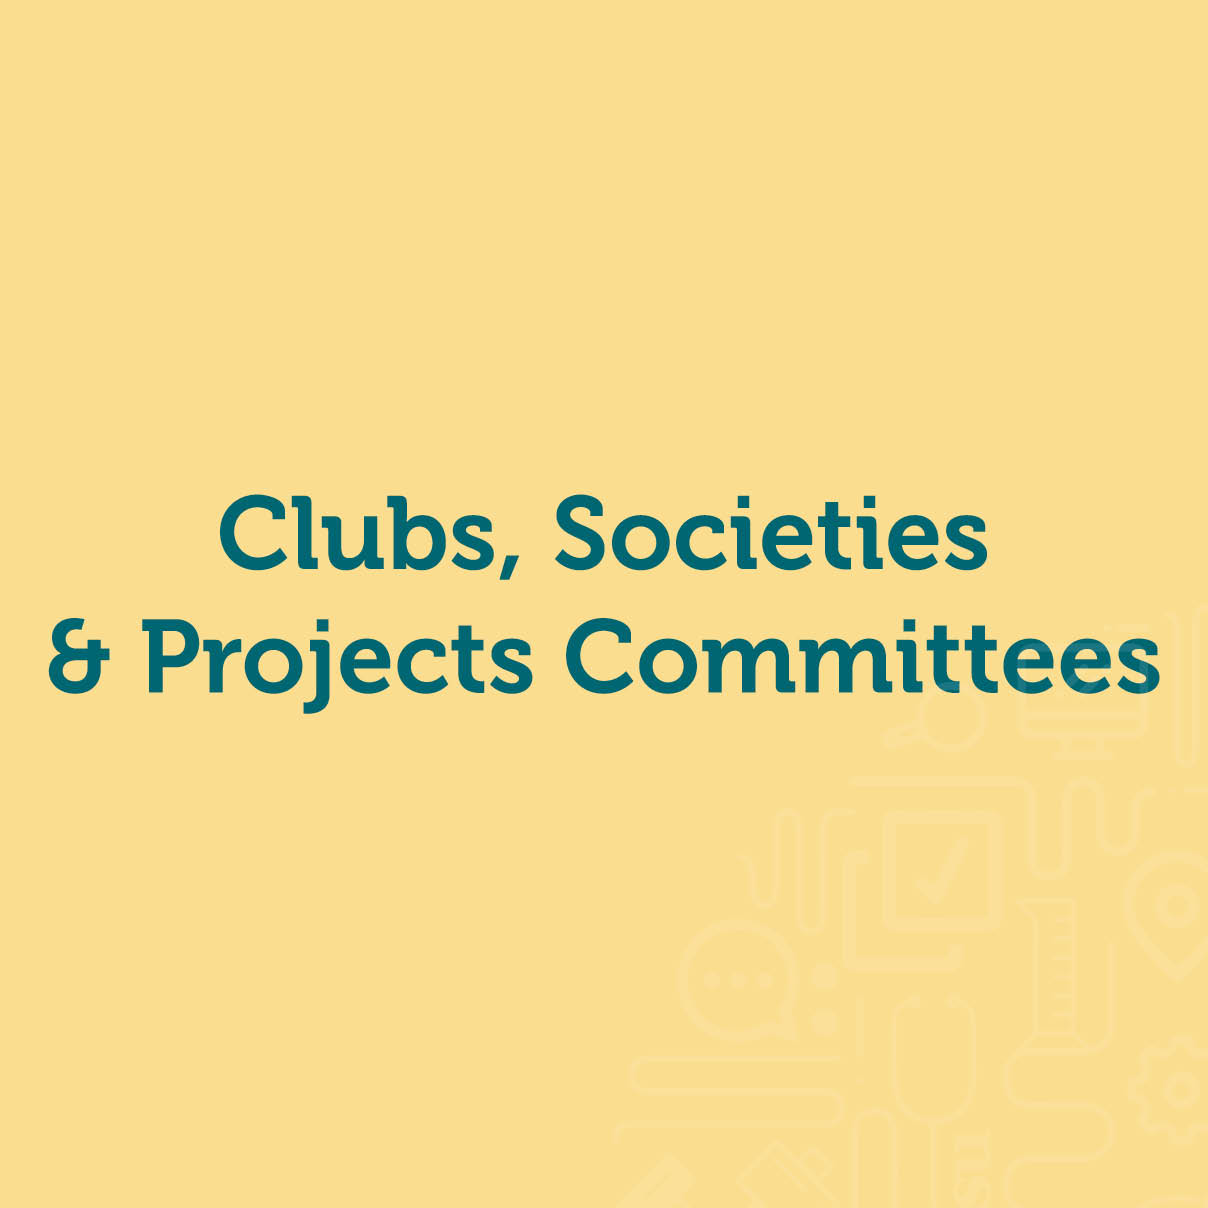 Clubs, Societies & Projects roles